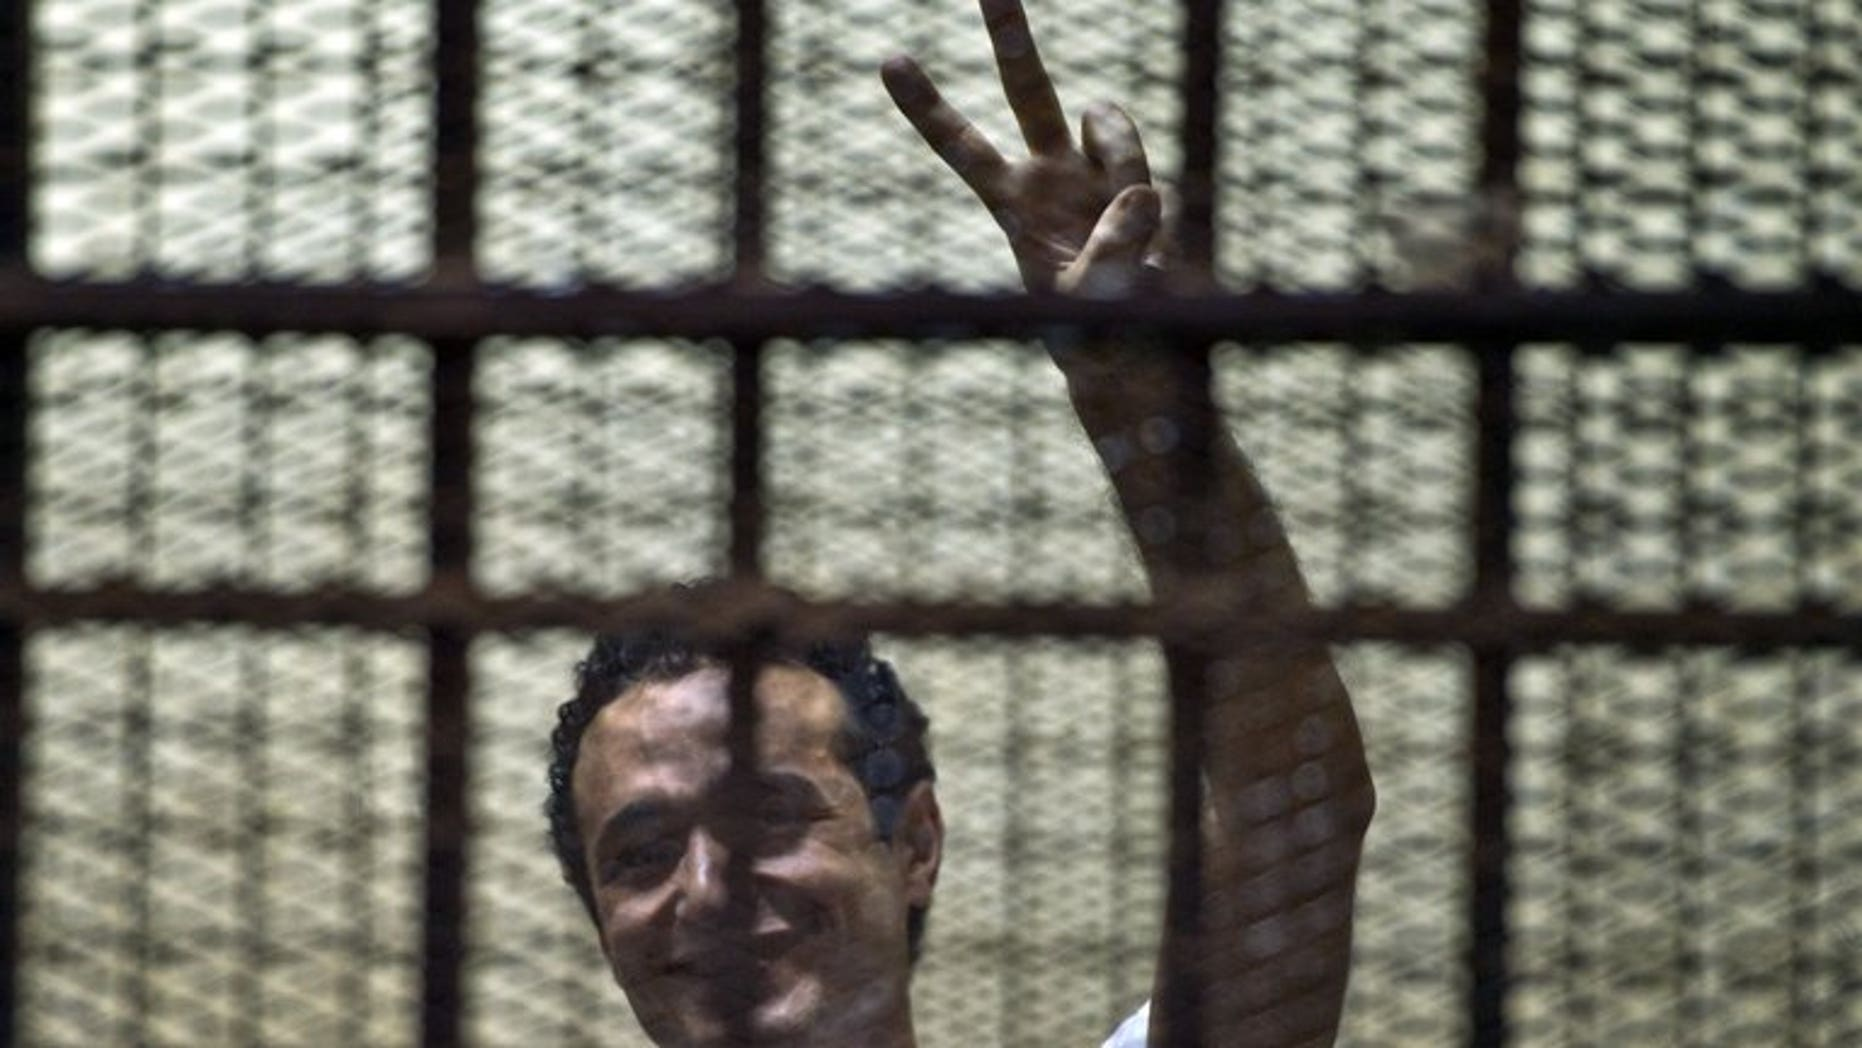 Ahmed Douma stands in the dock during his trial in Cairo on June 3. An Egyptian court on Sunday acquitted Douma and 11 other activists opposed to Mohamed Morsi of charges they incited violence against members of his Muslim Brotherhood, a judicial source said.